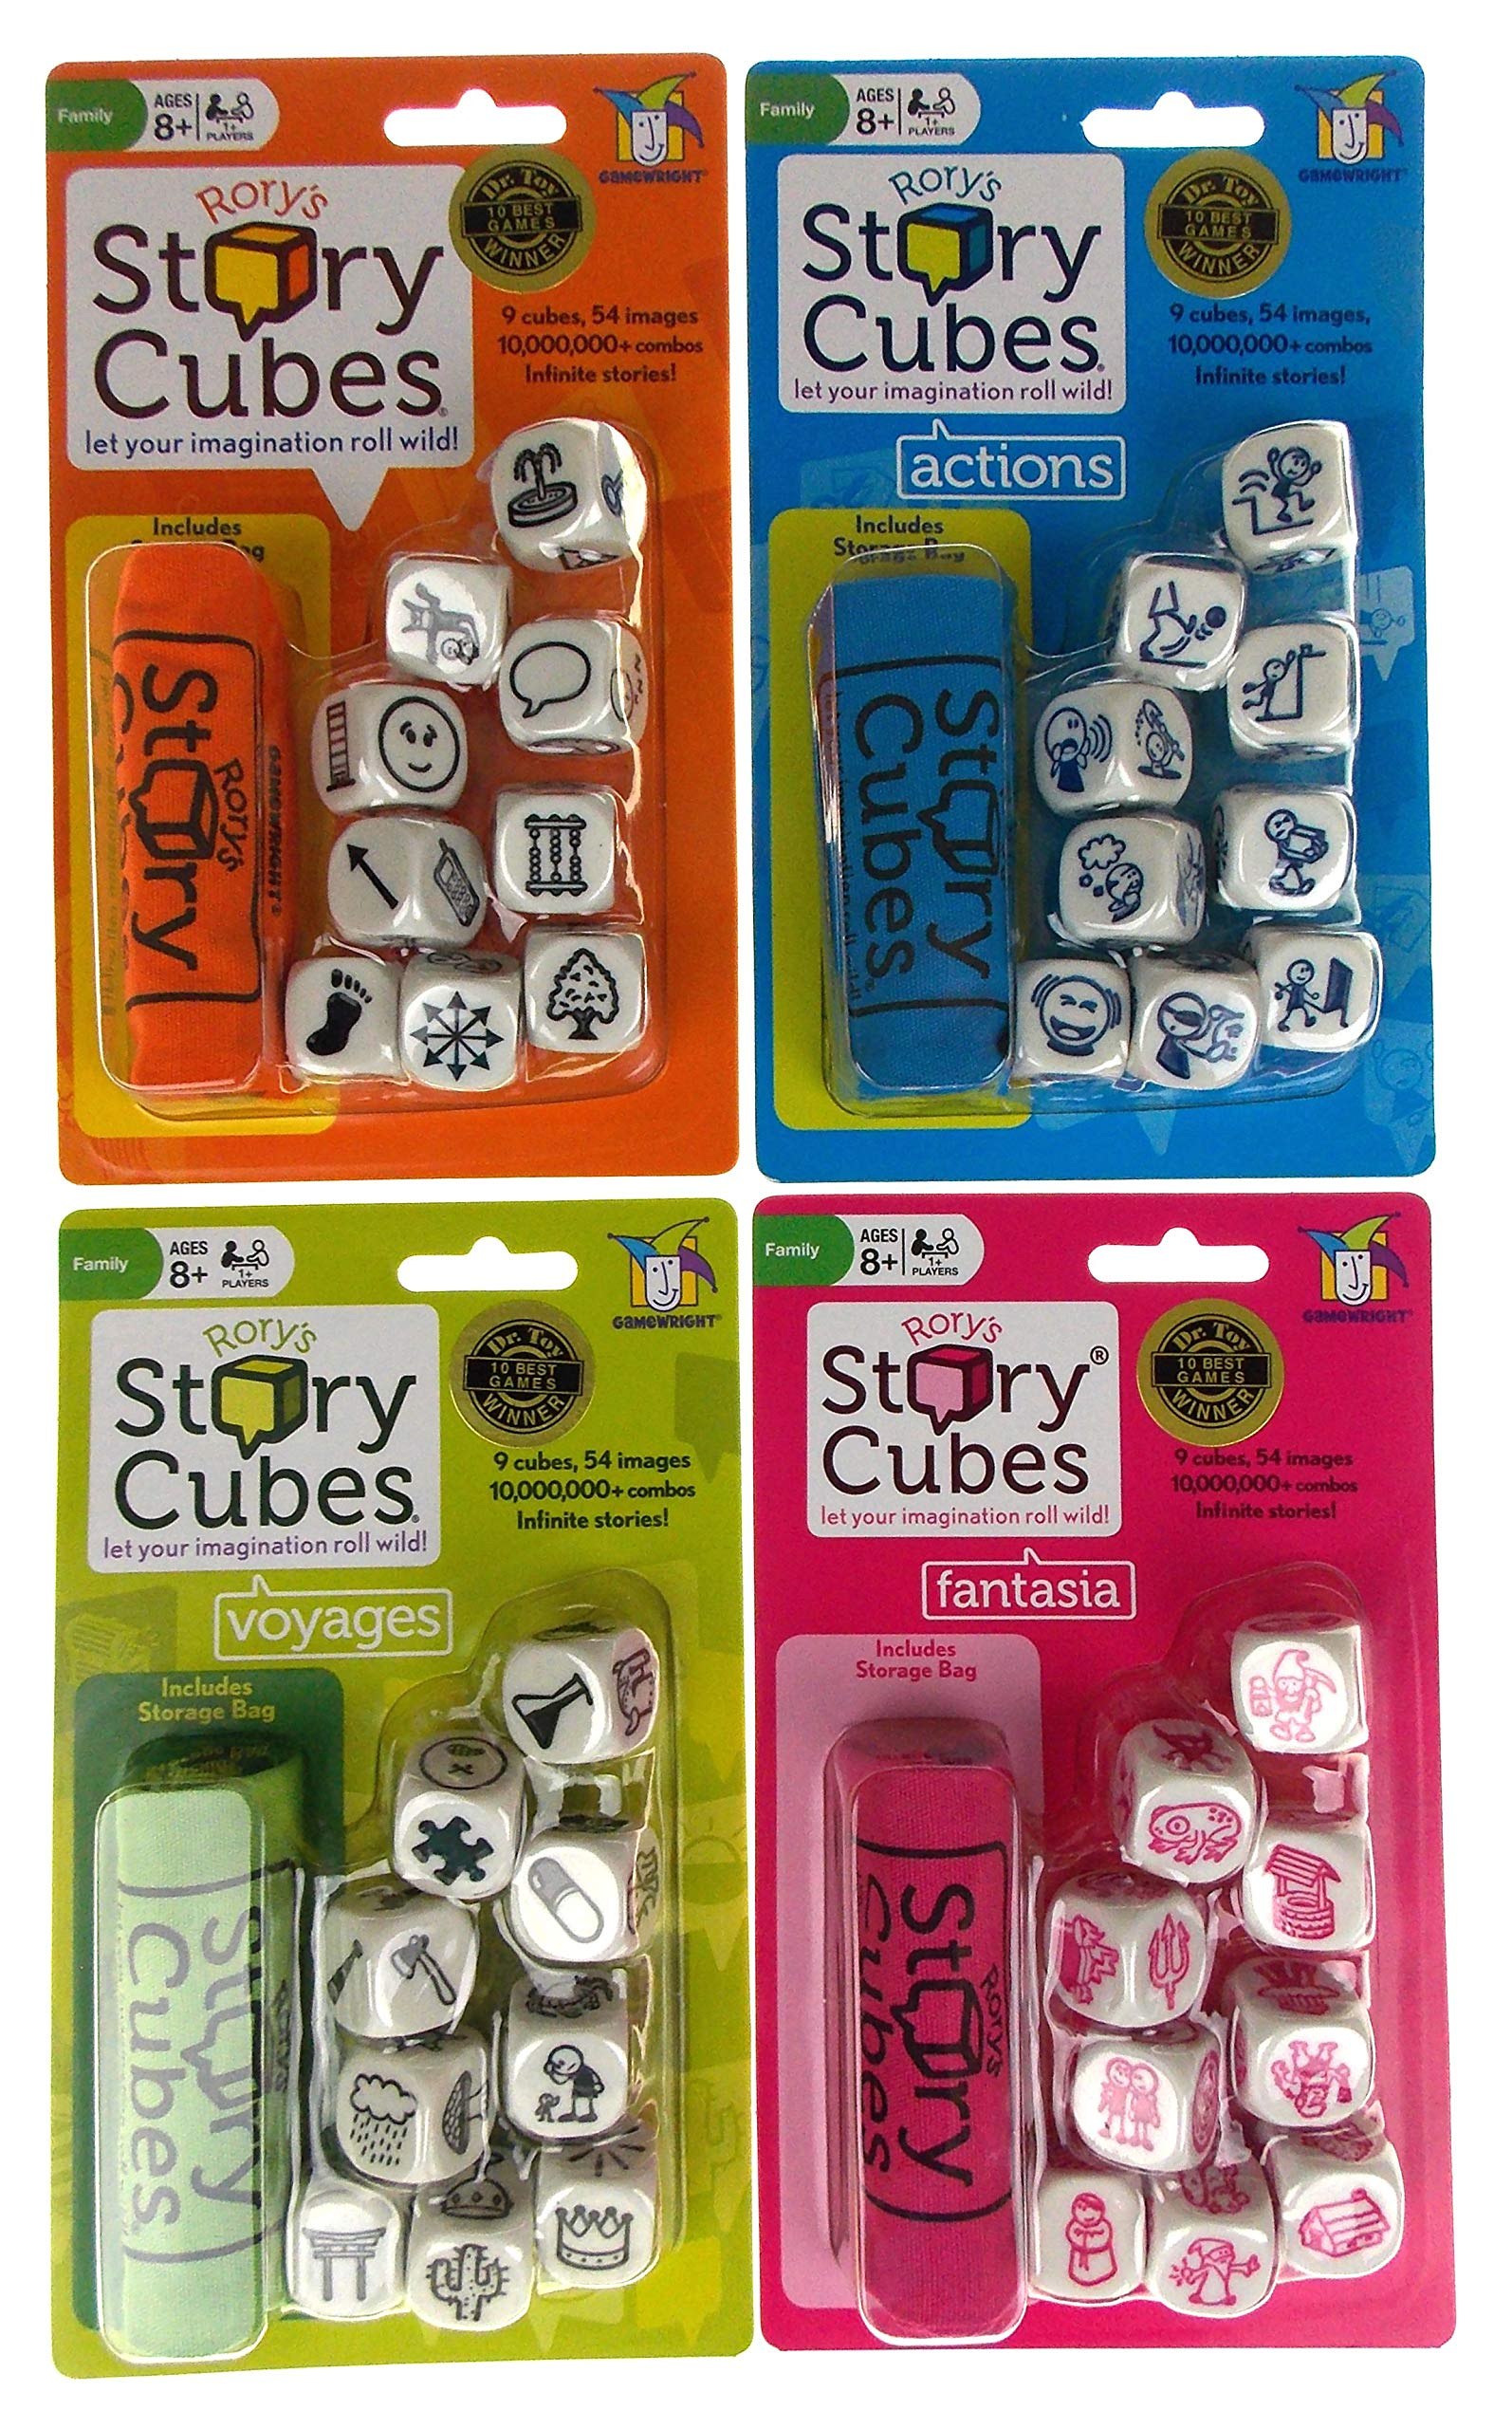 Rory's Story Cubes Bundle - Includes Rory's Story Cubes Original, Actions, Voyages & Fantasia Gamewright by Hickoryville